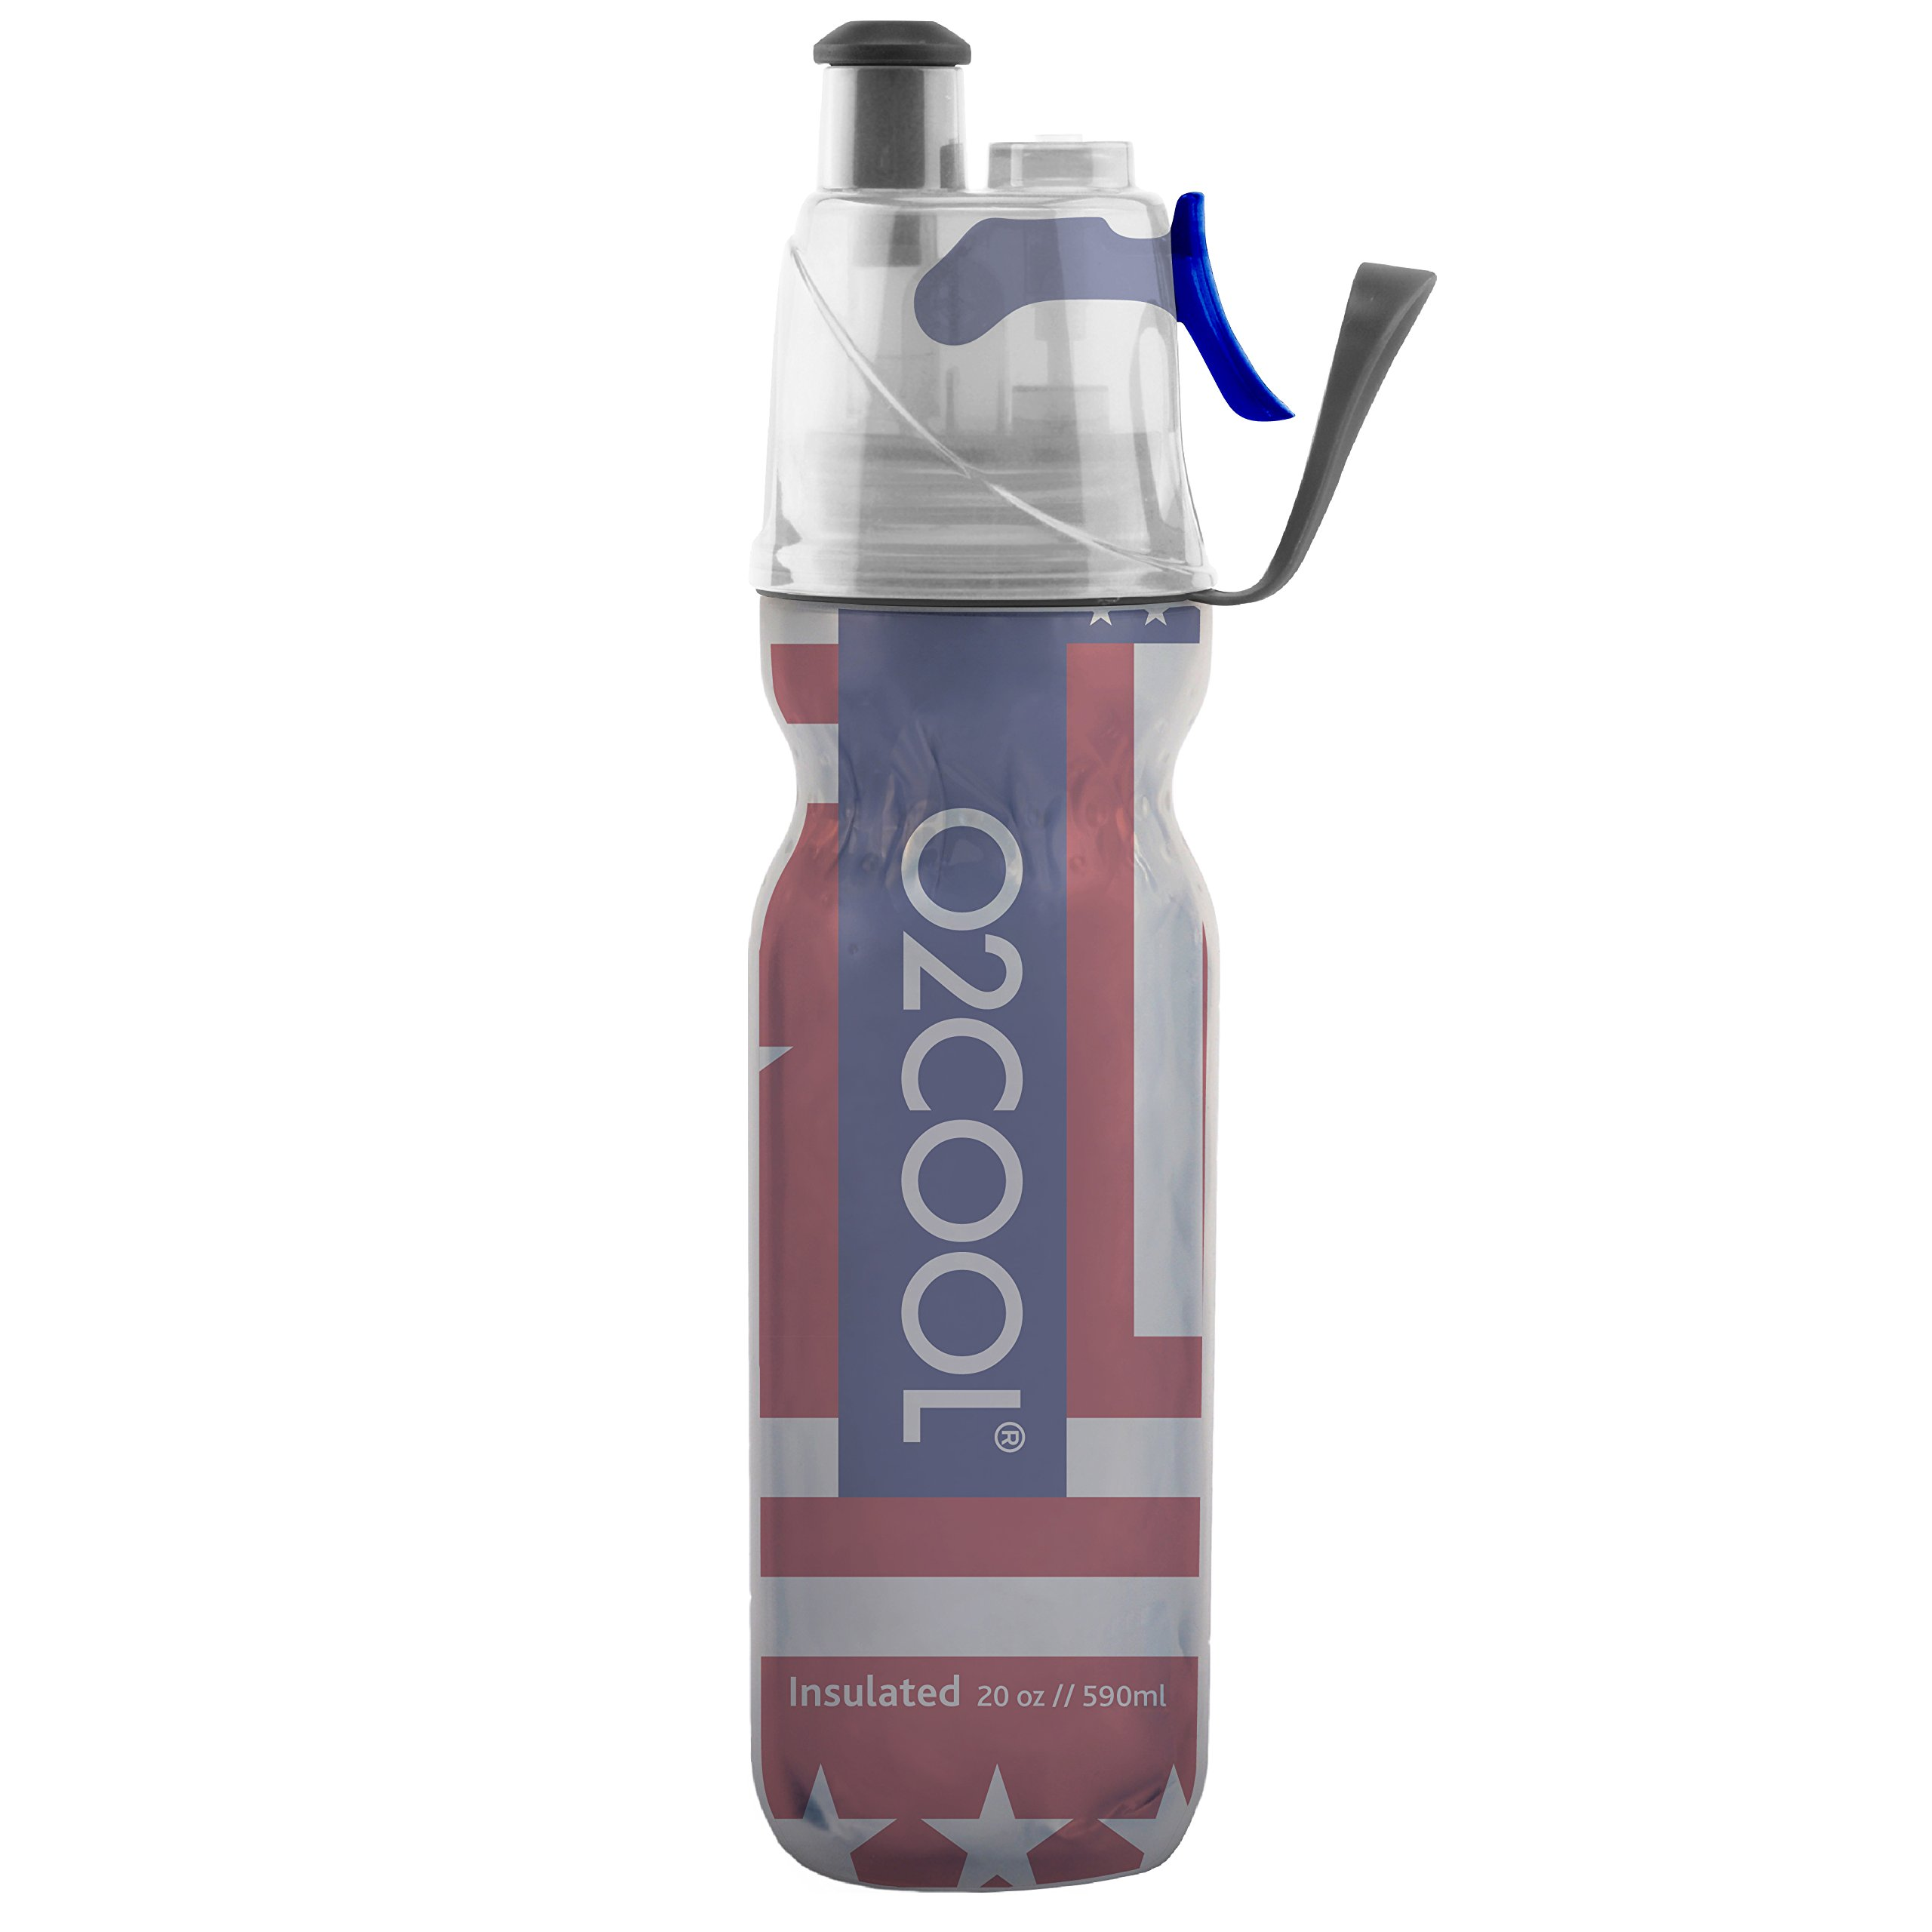 O2COOL ArcticSqueeze Insulated Mist 'N Sip Squeeze Bottle 20 oz, Patriotic One